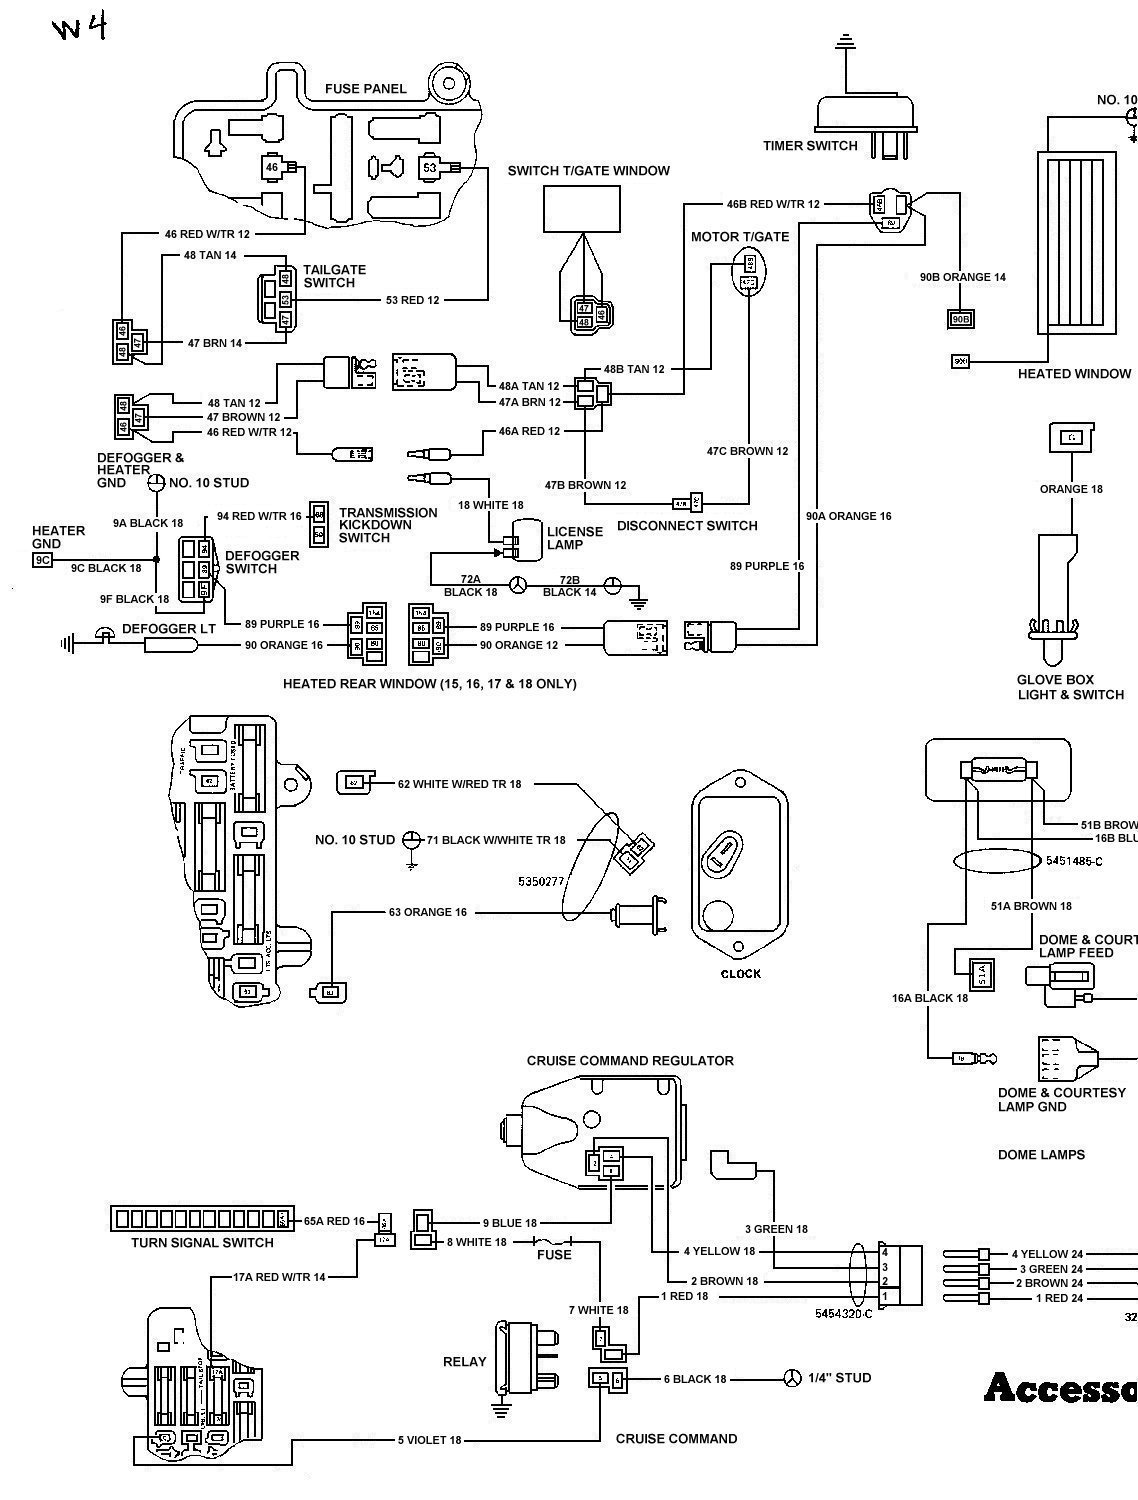 1979 Jeep Cj5 Ignition Diagram | Wiring Diagram Database